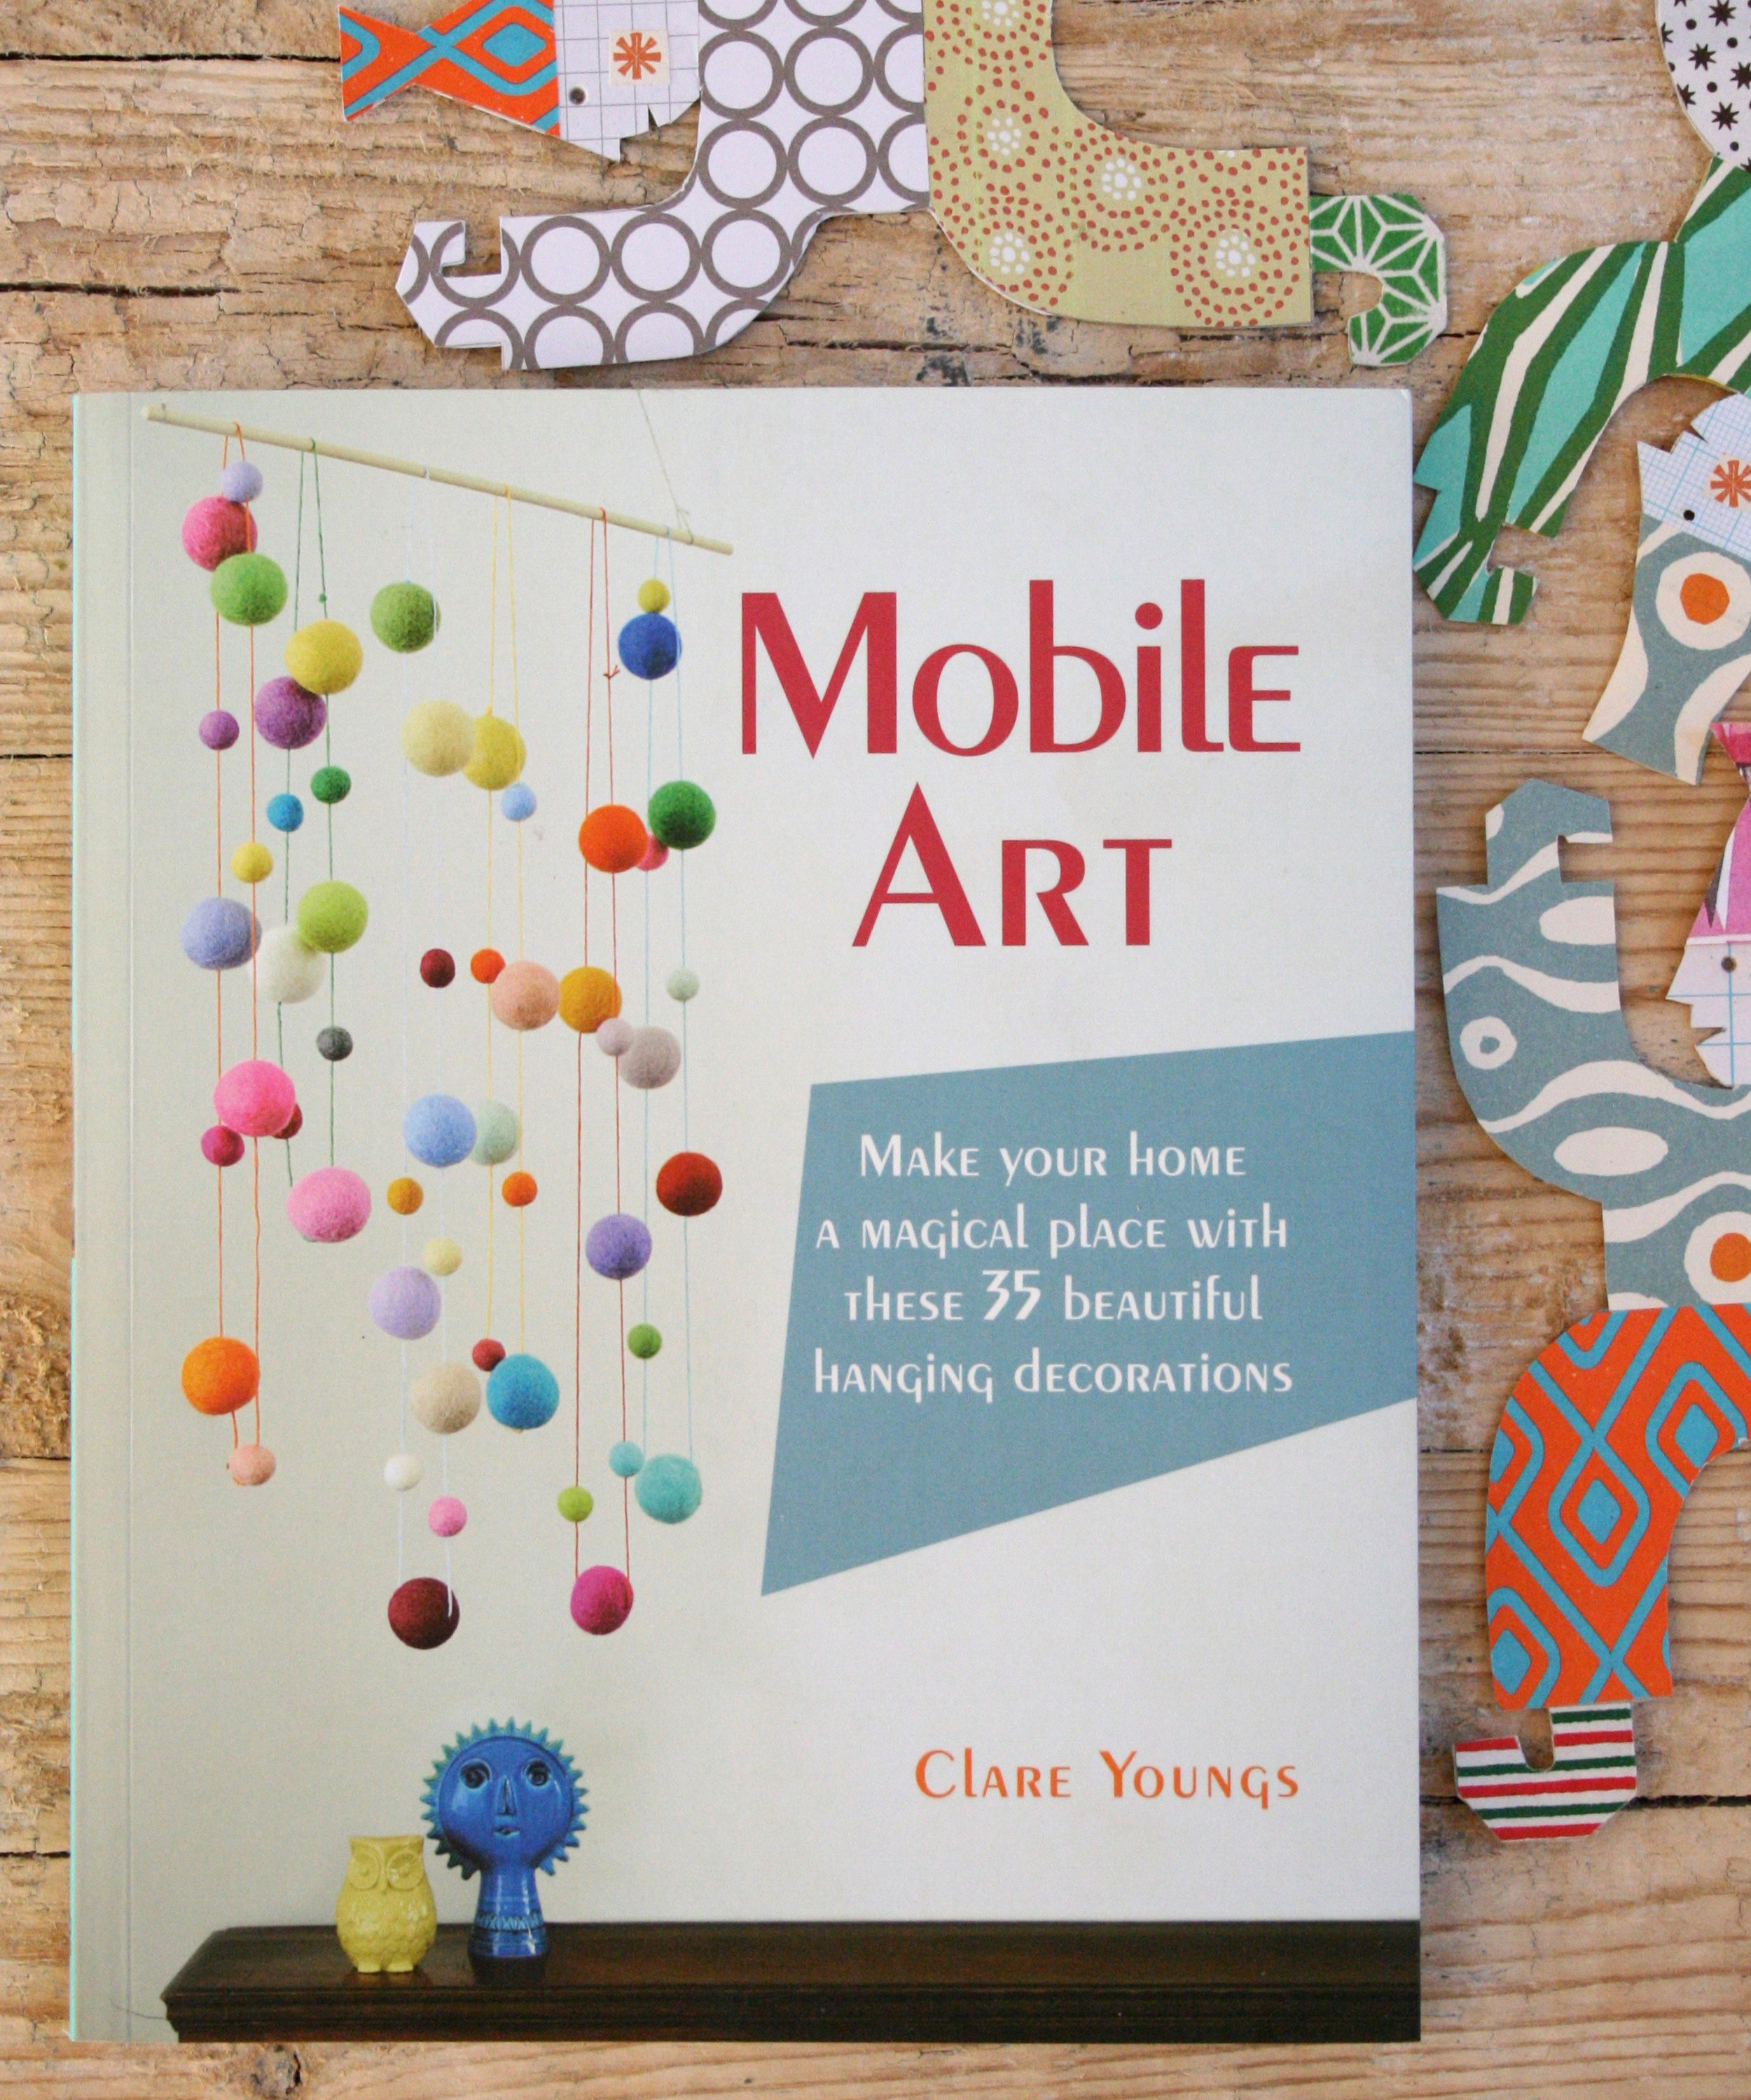 mobiles book cover.jpg